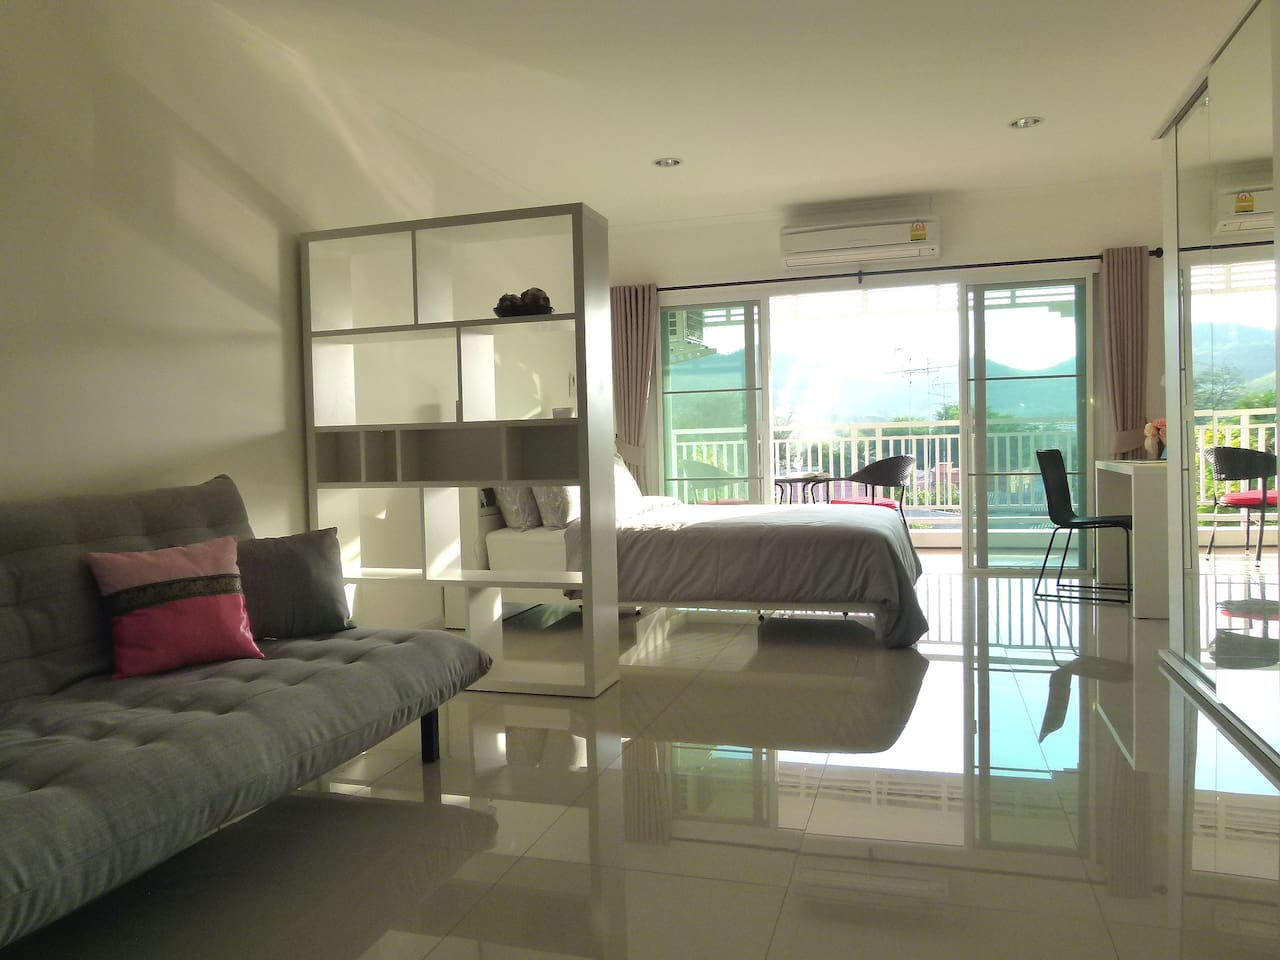 Living Room and Bed Room